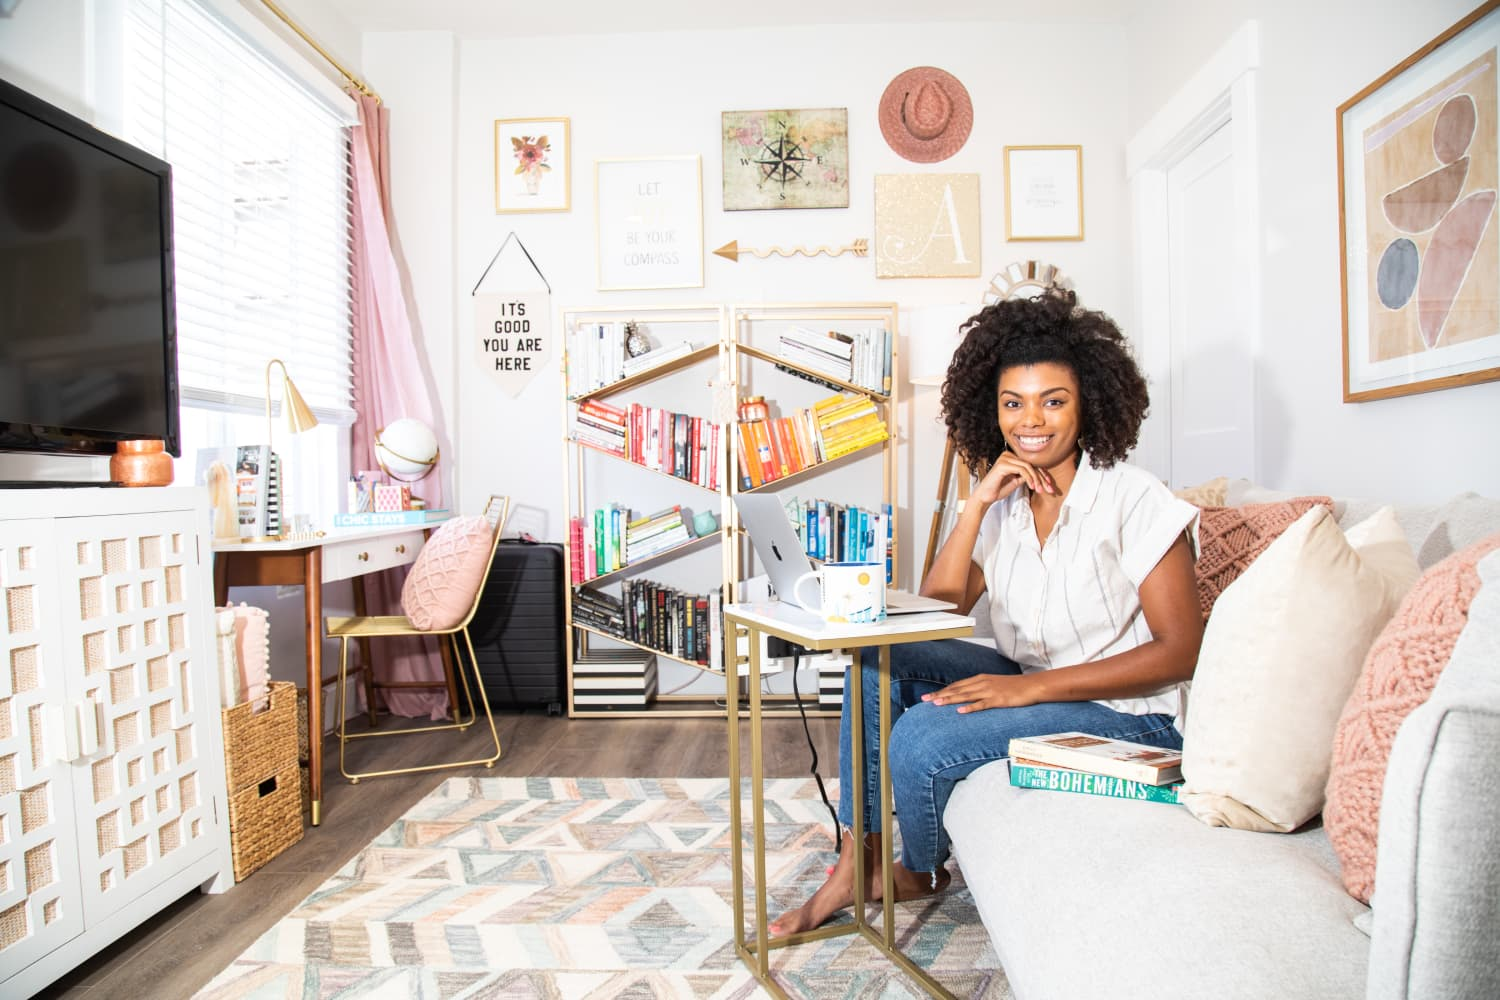 This 450-Square-Foot Rental Makes Organizing and Designing on a Budget Look Easy